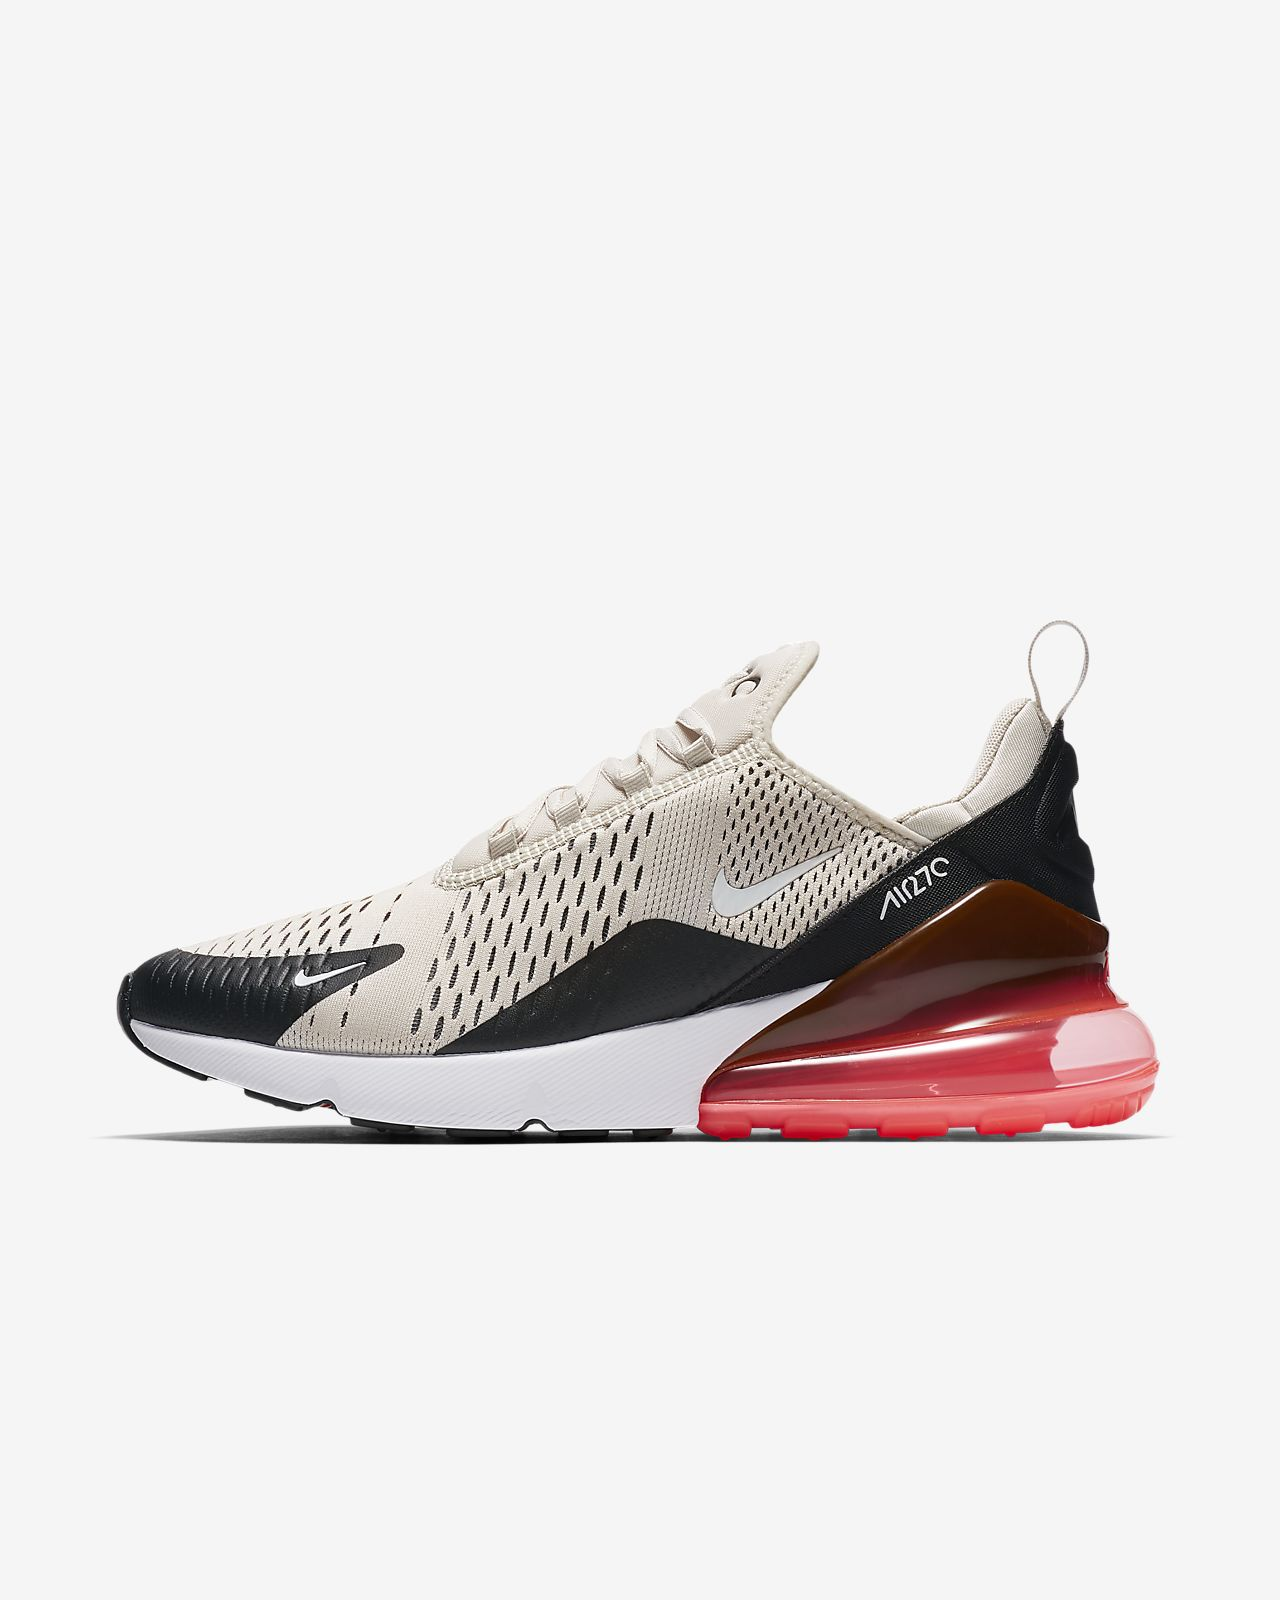 Discount Nike Air Max Mens,Nike Air Max 95 Discount,Nike AIR ZOOM PEGASUSEN 2018 Deadstock Summer Knitting Breathable Leisure S